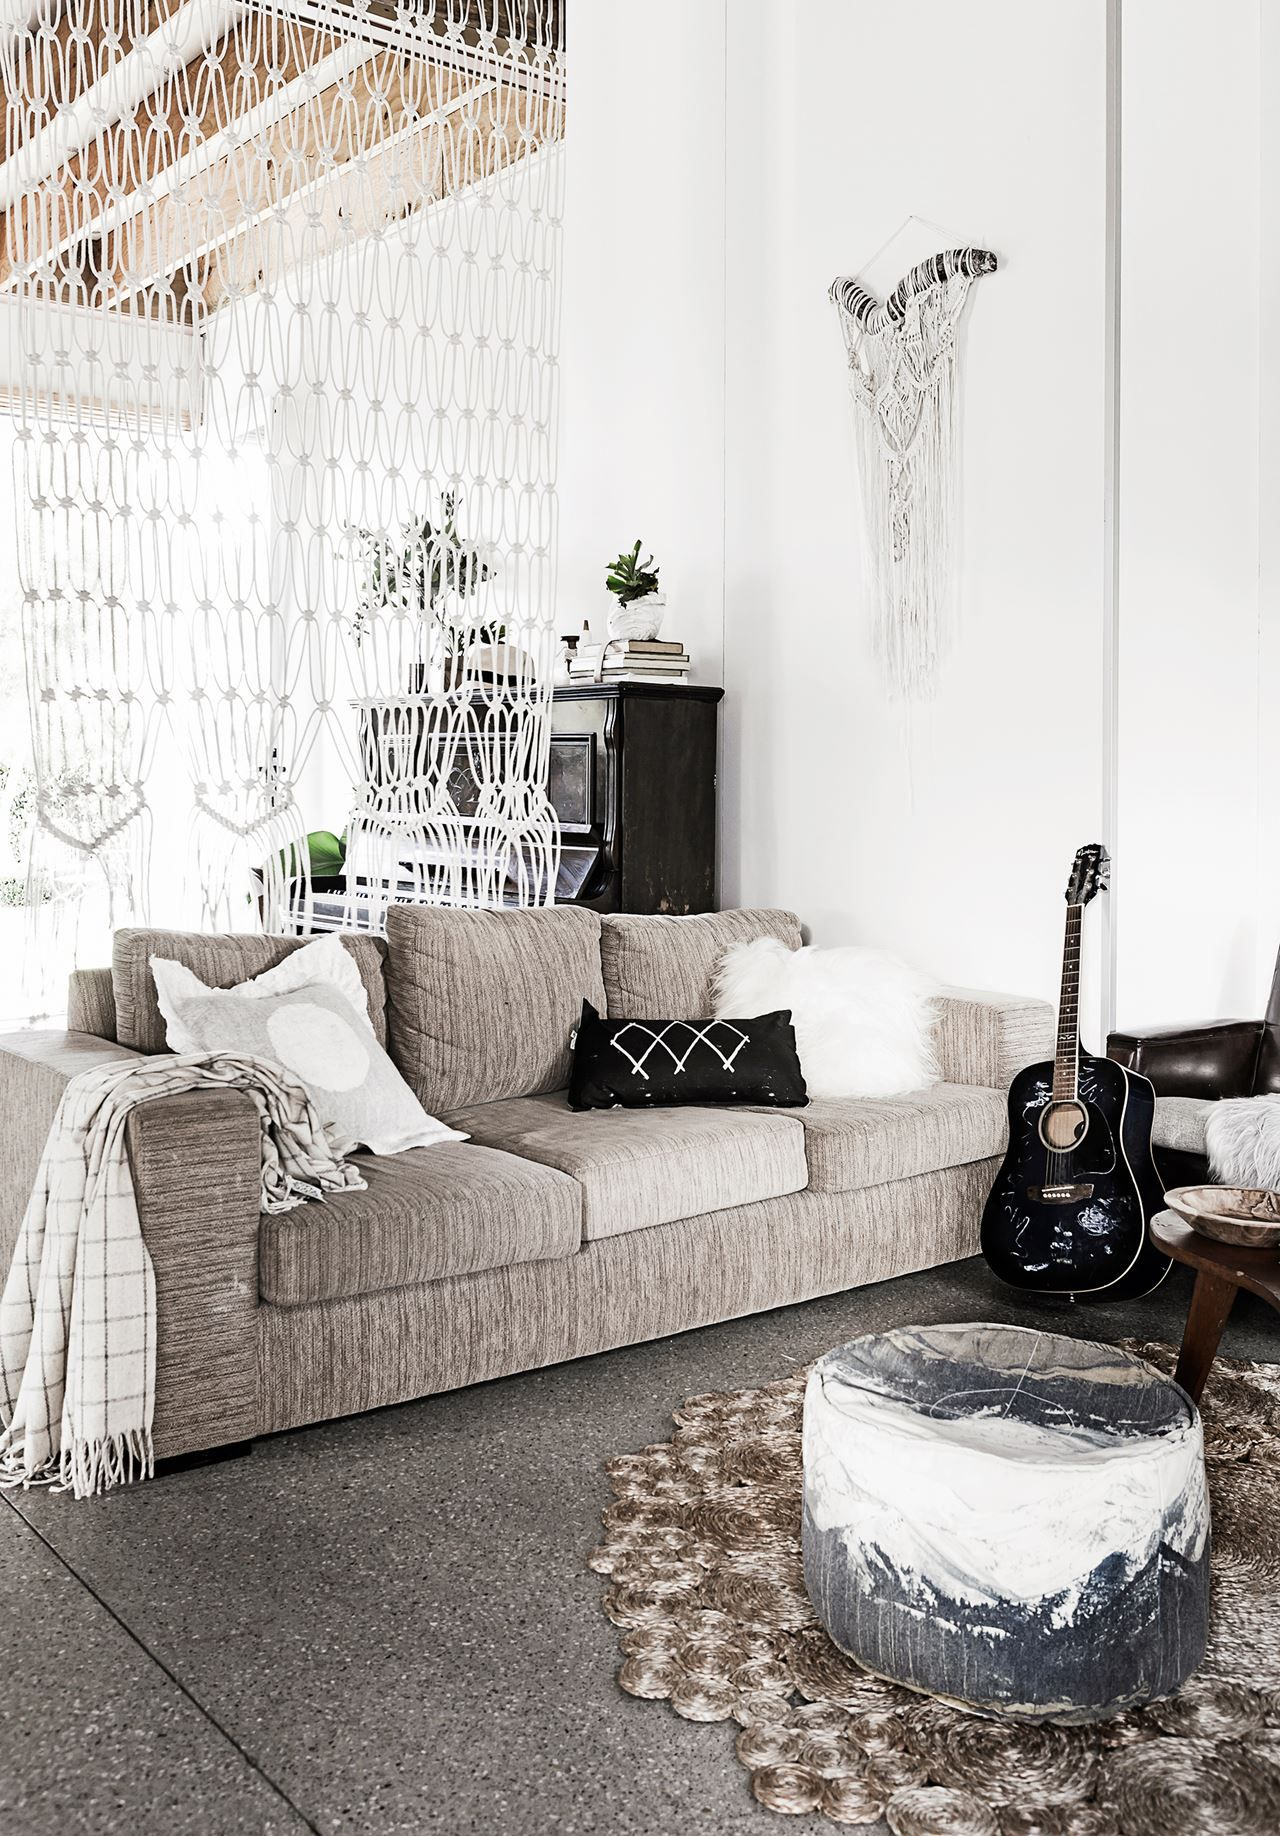 Ashton Sofa Oz Design Sofas Living Room Furniture Secrets Of A Professional Organiser Interiors